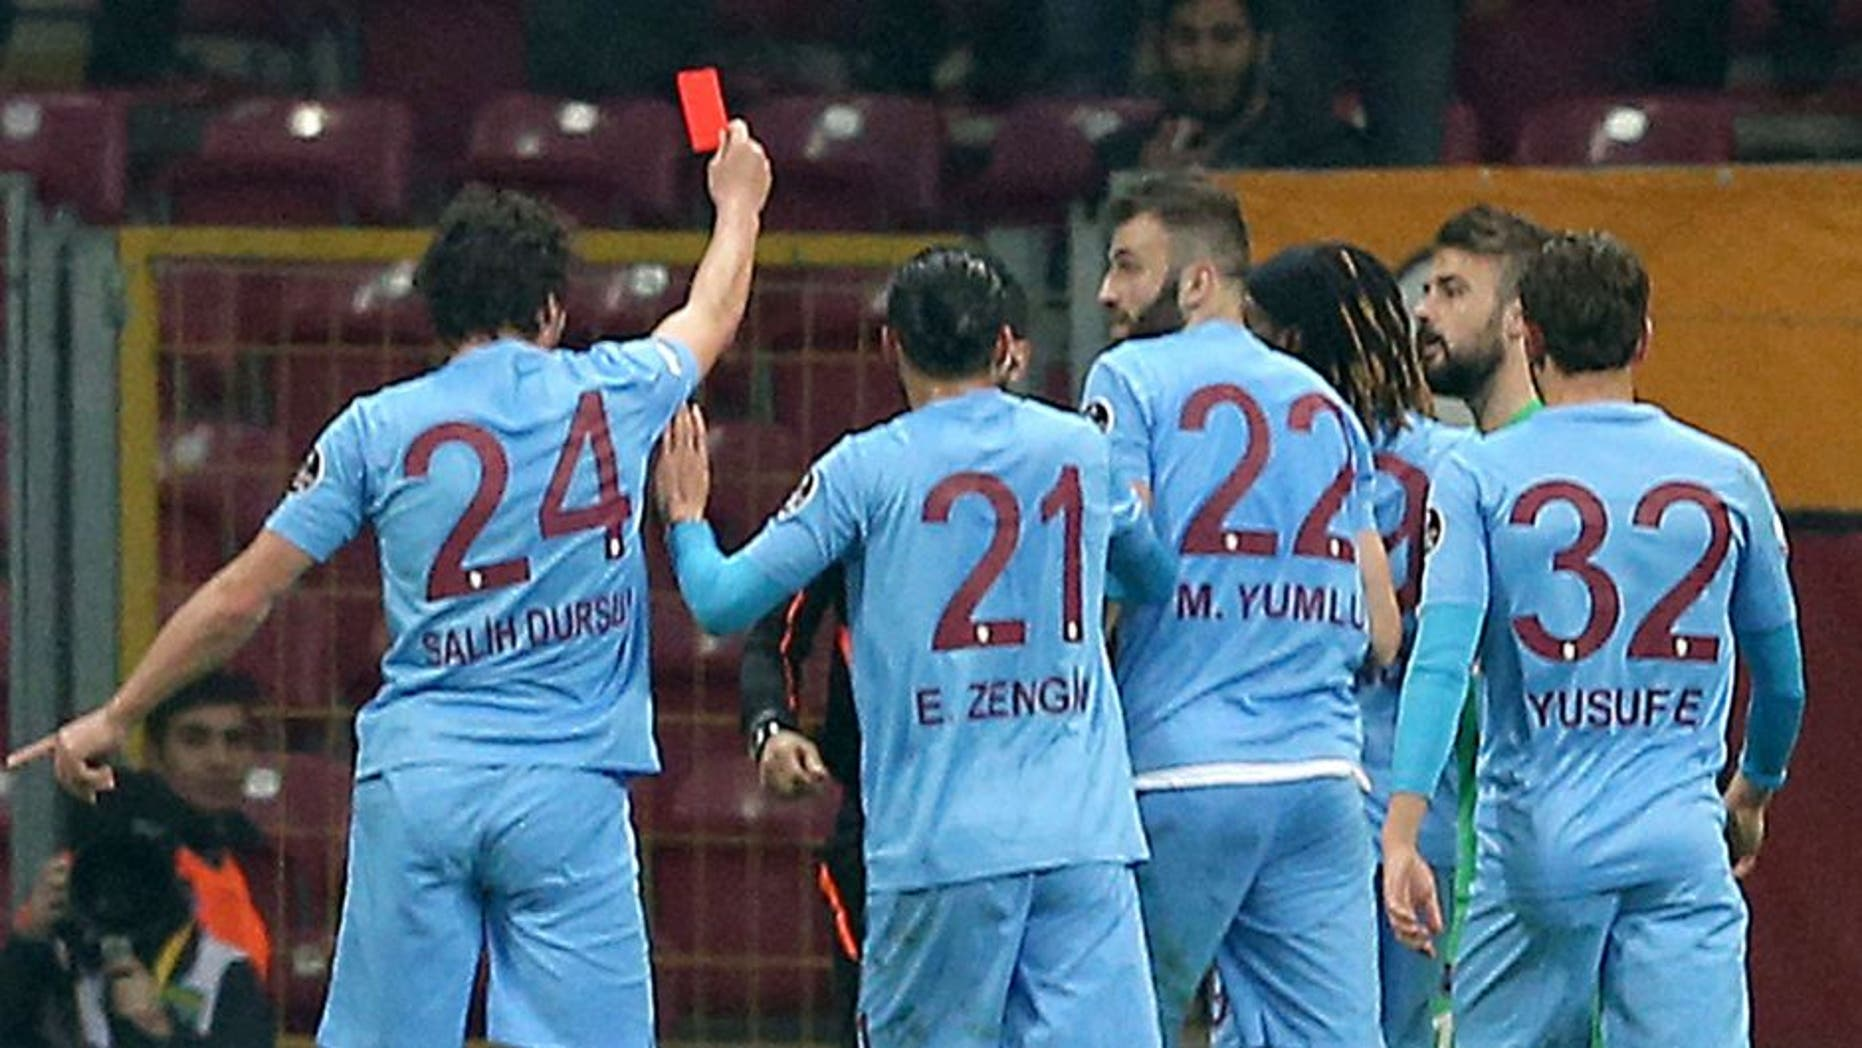 ISTANBUL, TURKEY, FEBRUARY 21: Salih Dursun (24) of Trabzonspor shows a red card to referee as he takes the card from referee's hand to react his decisions during Turkish Spor Toto Super Lig football match between Galatasaray and Trabzon at Turk Telekom Arena in Istanbul, Turkey on February 21, 2016. (Photo by Berk Ozkan/Anadolu Agency/Getty Images)